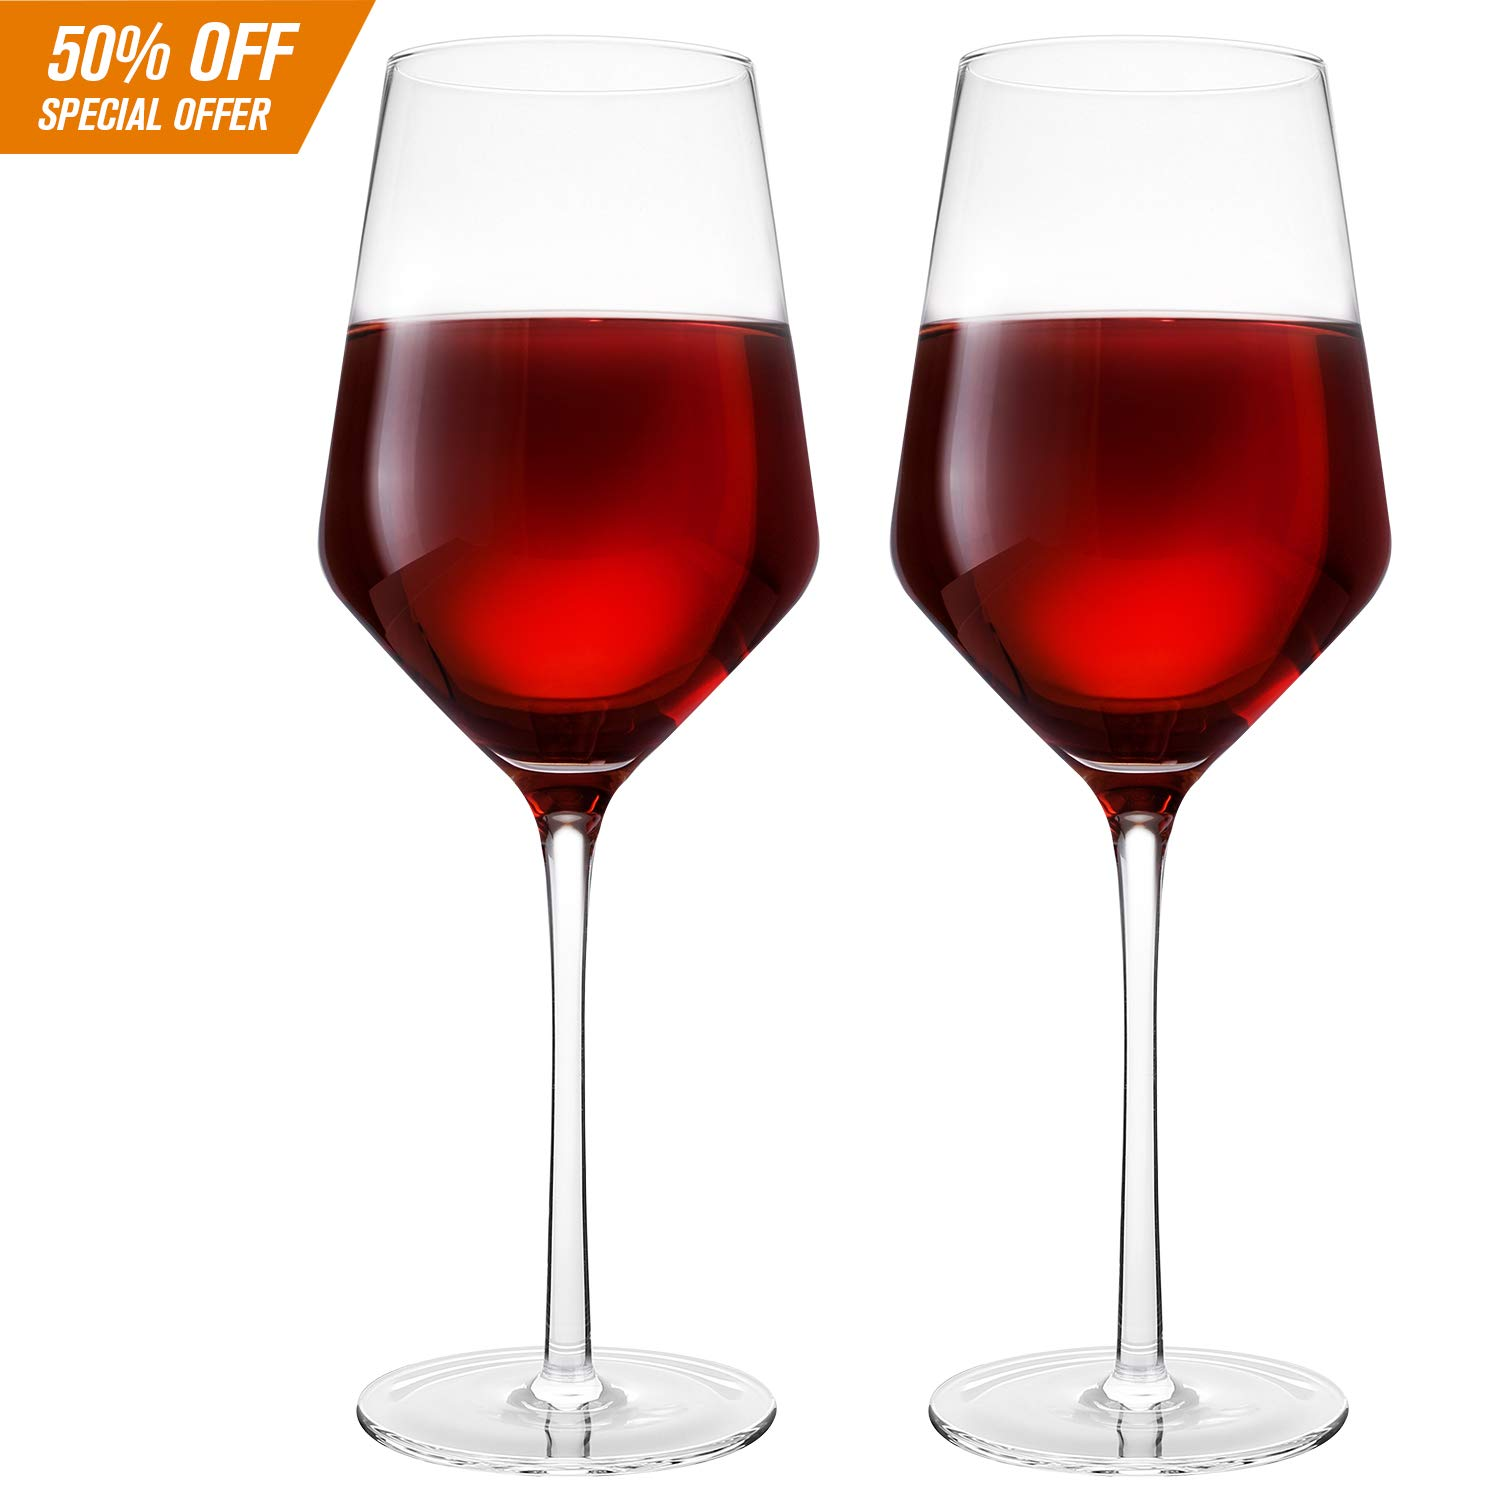 Hand Blown Crystal Wine Glasses - Bella Vino Classy Red/White Wine Glass Made from 100% Lead Free Premium Crystal Glass, 16 Oz, 9'', Perfect for Any Occasion, Great Gift, Set of 2, Clear